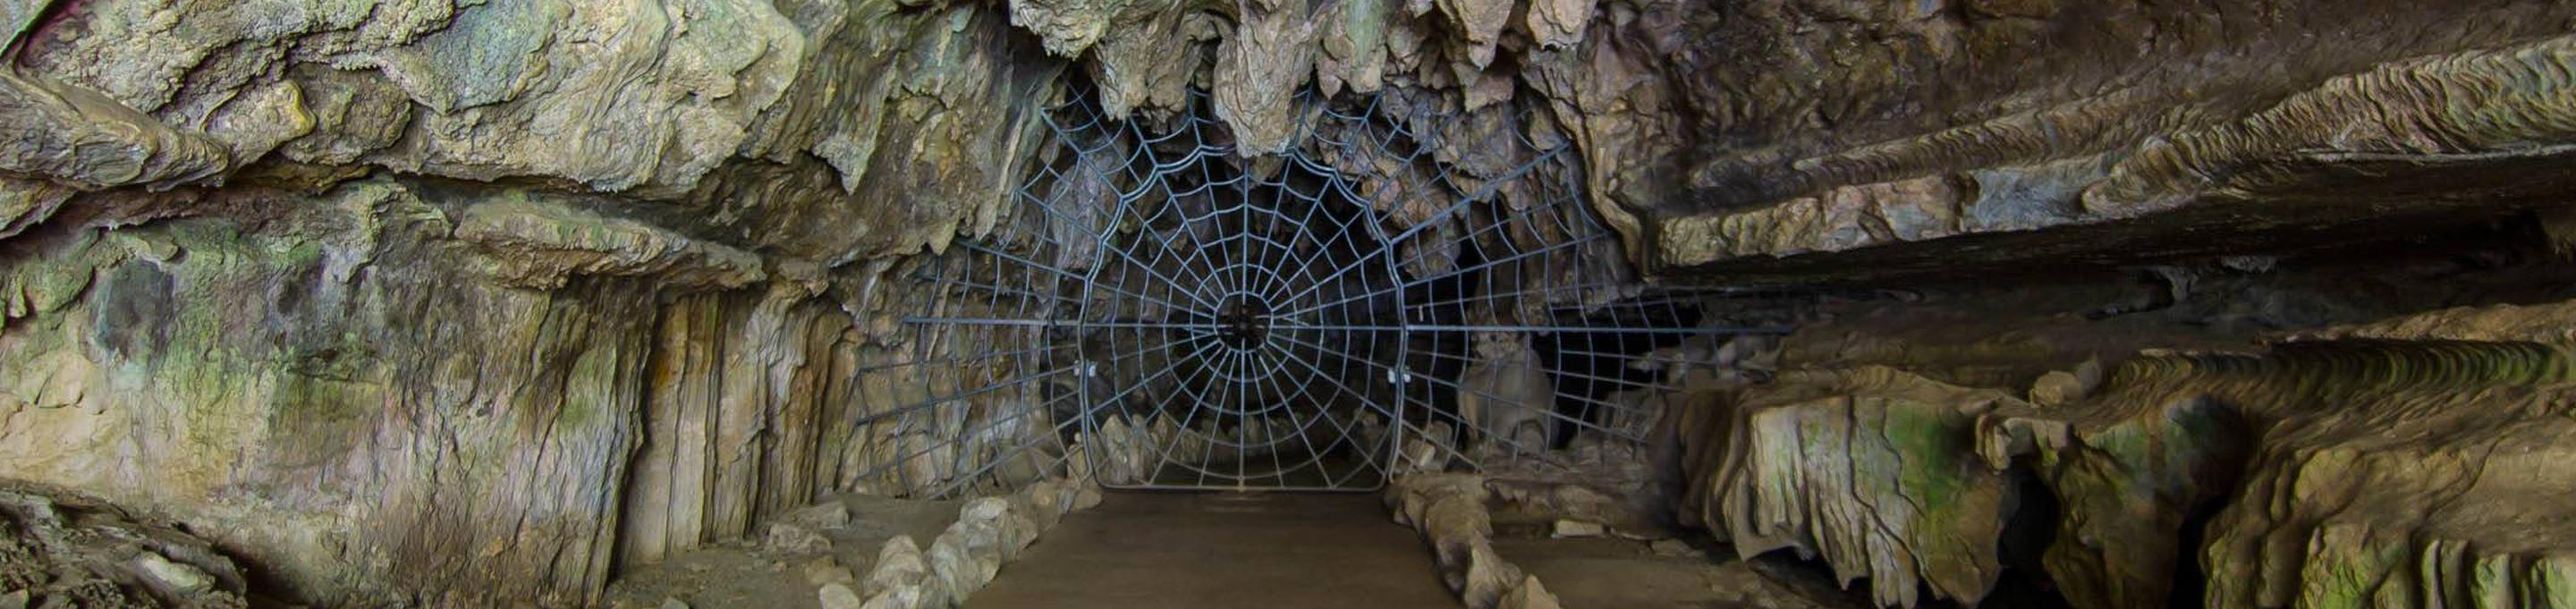 In order to enter Crystal Cave you must first pass through the famous historical Spider Web Gate. The gate was installed in 1939.The Spider Web Gate installed in 1939.